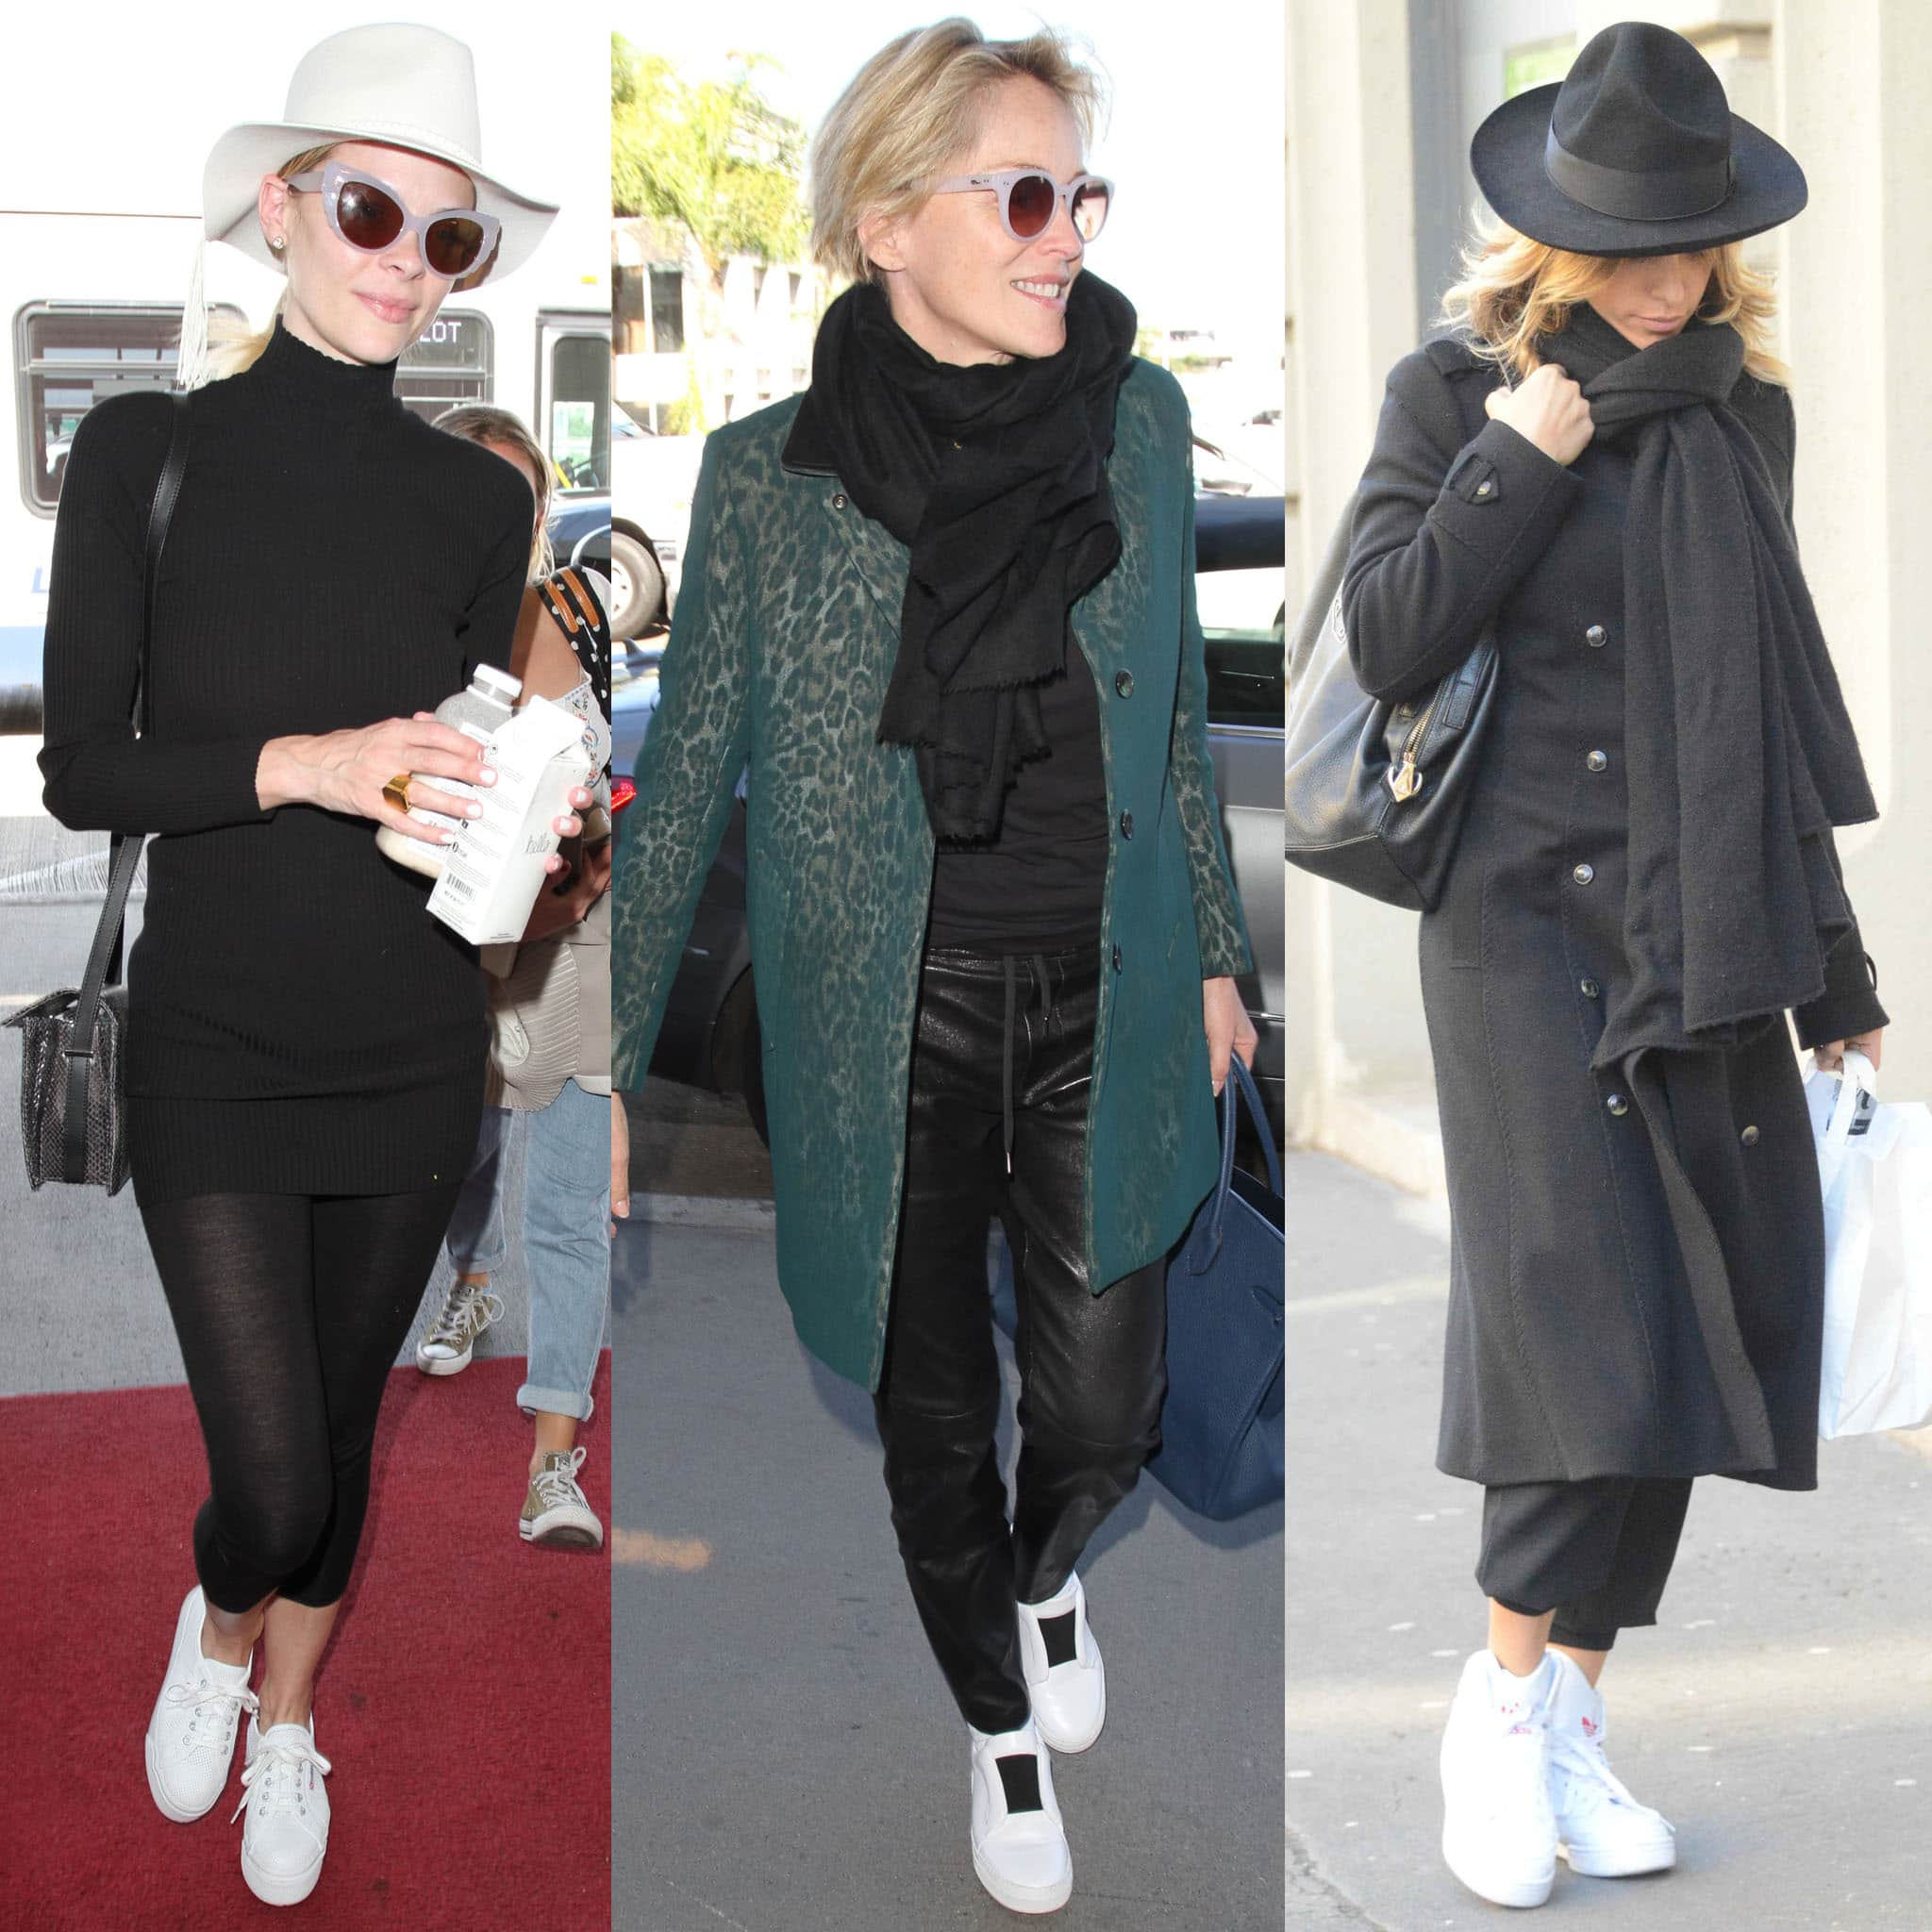 Jaime King, Sharon Stone, and Elisabetta Canalis prove that white shoes can be worn during winter